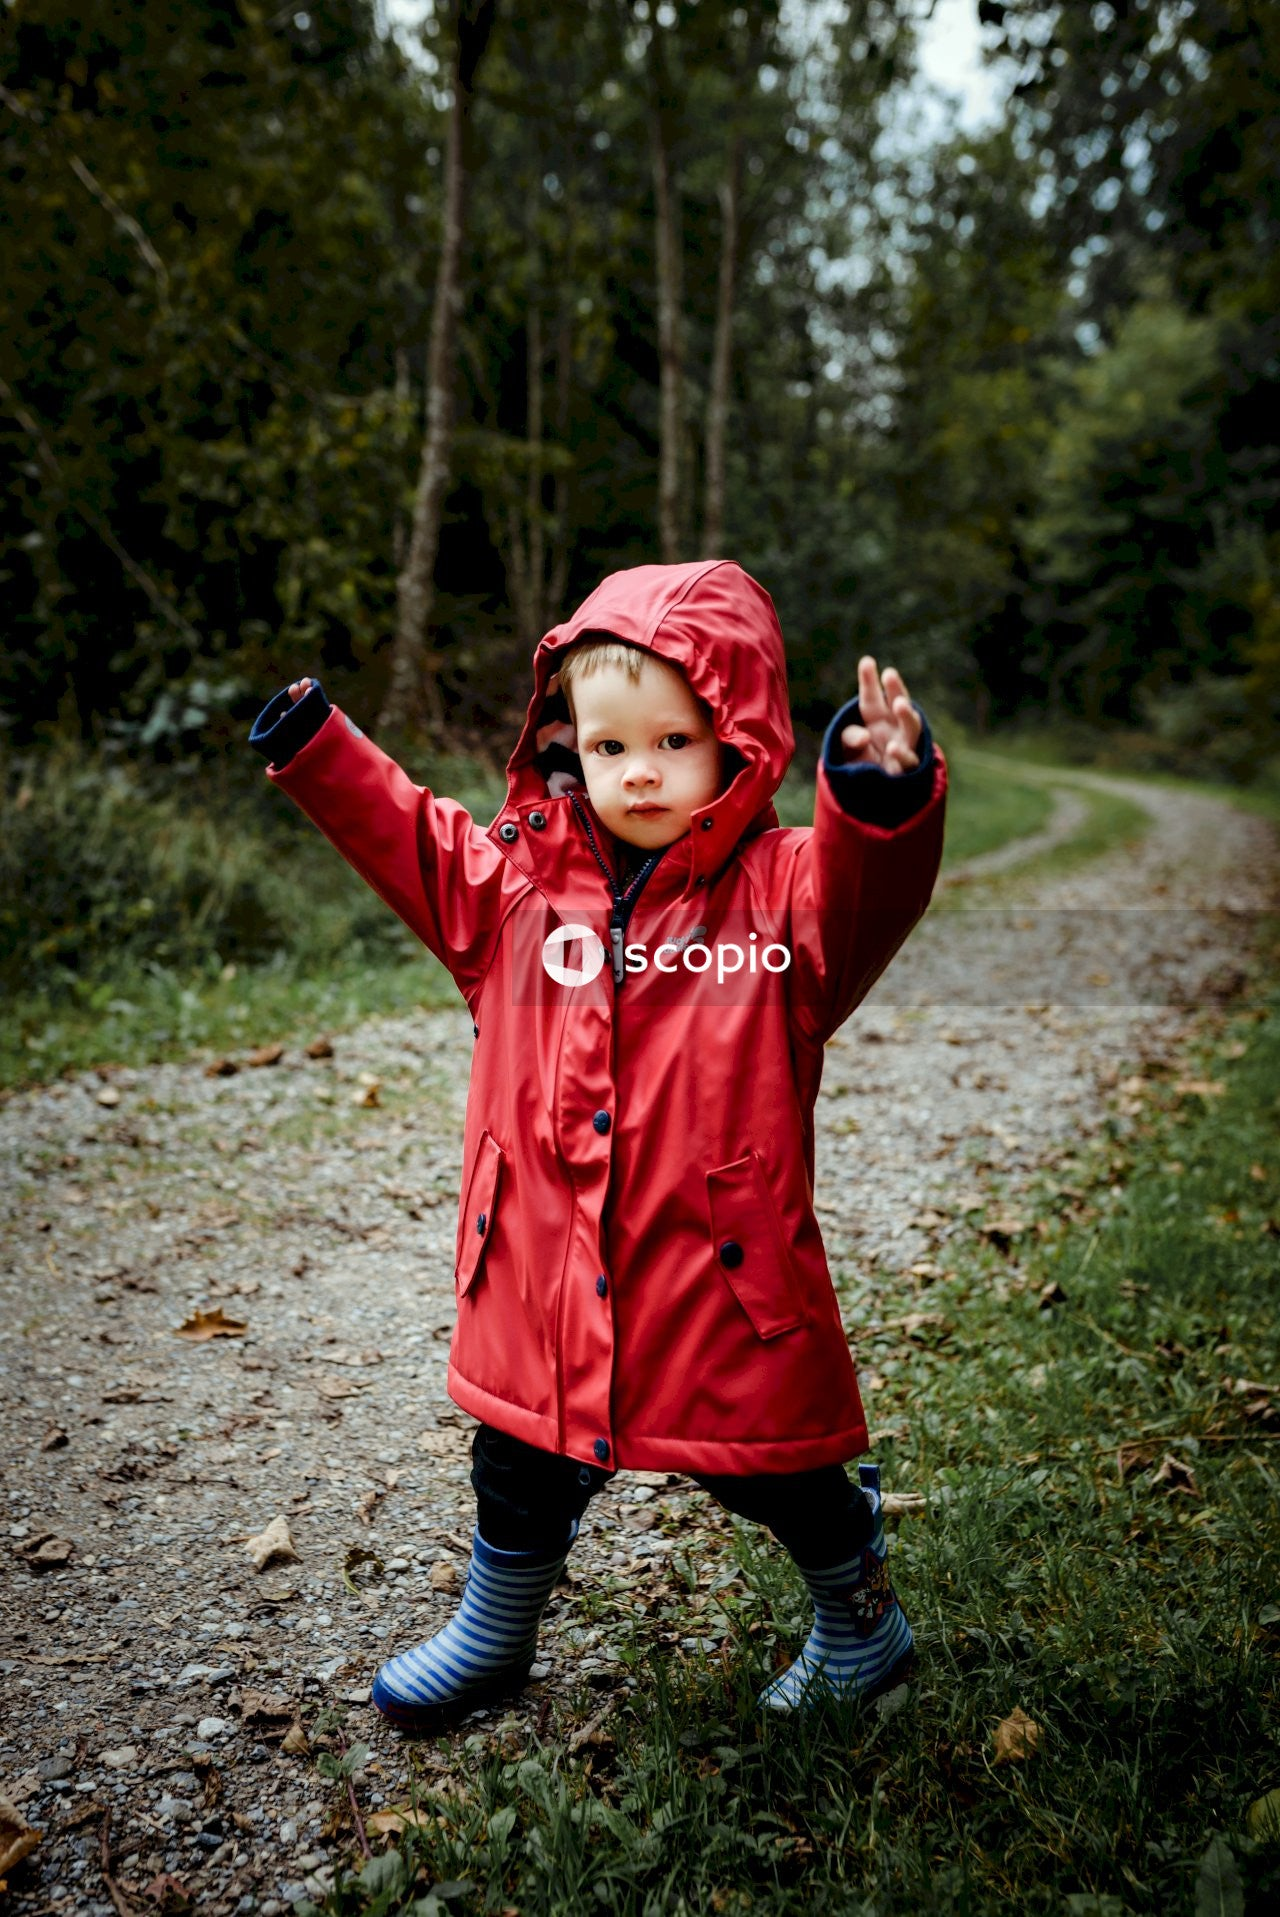 Girl in red jacket standing on dirt road